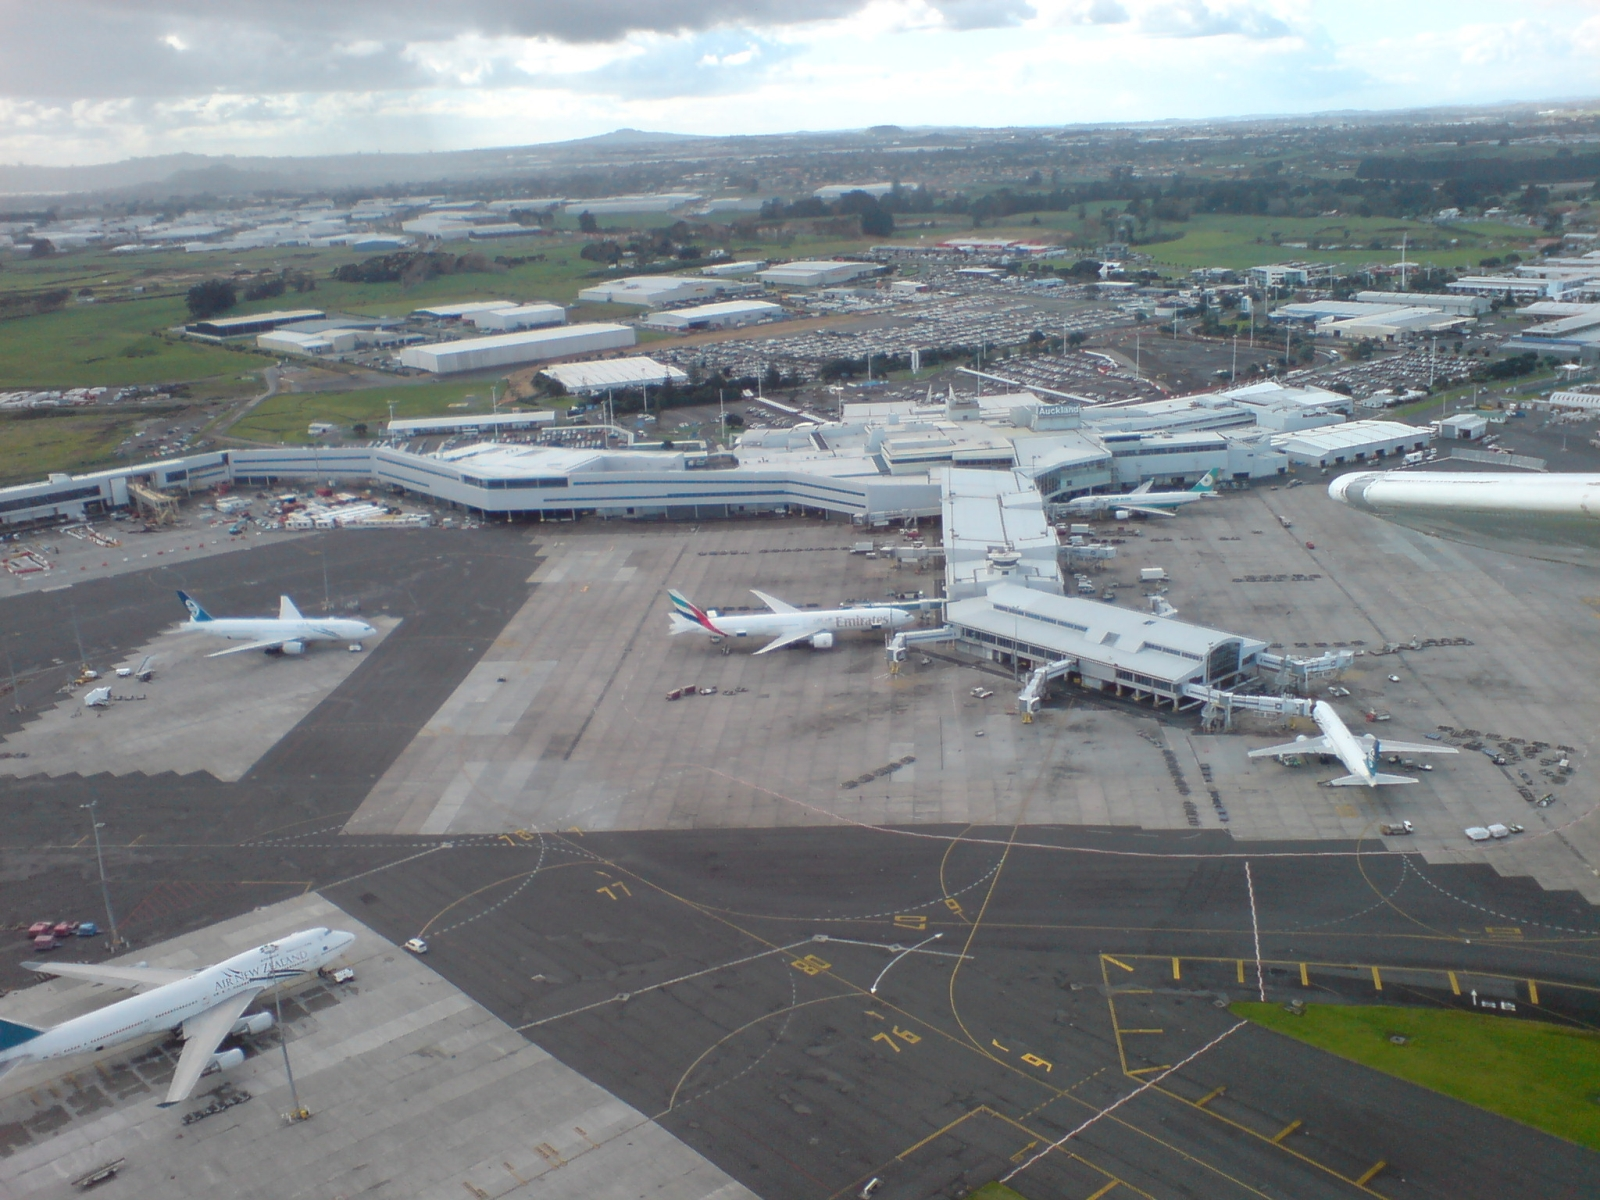 auckland airport from light plane